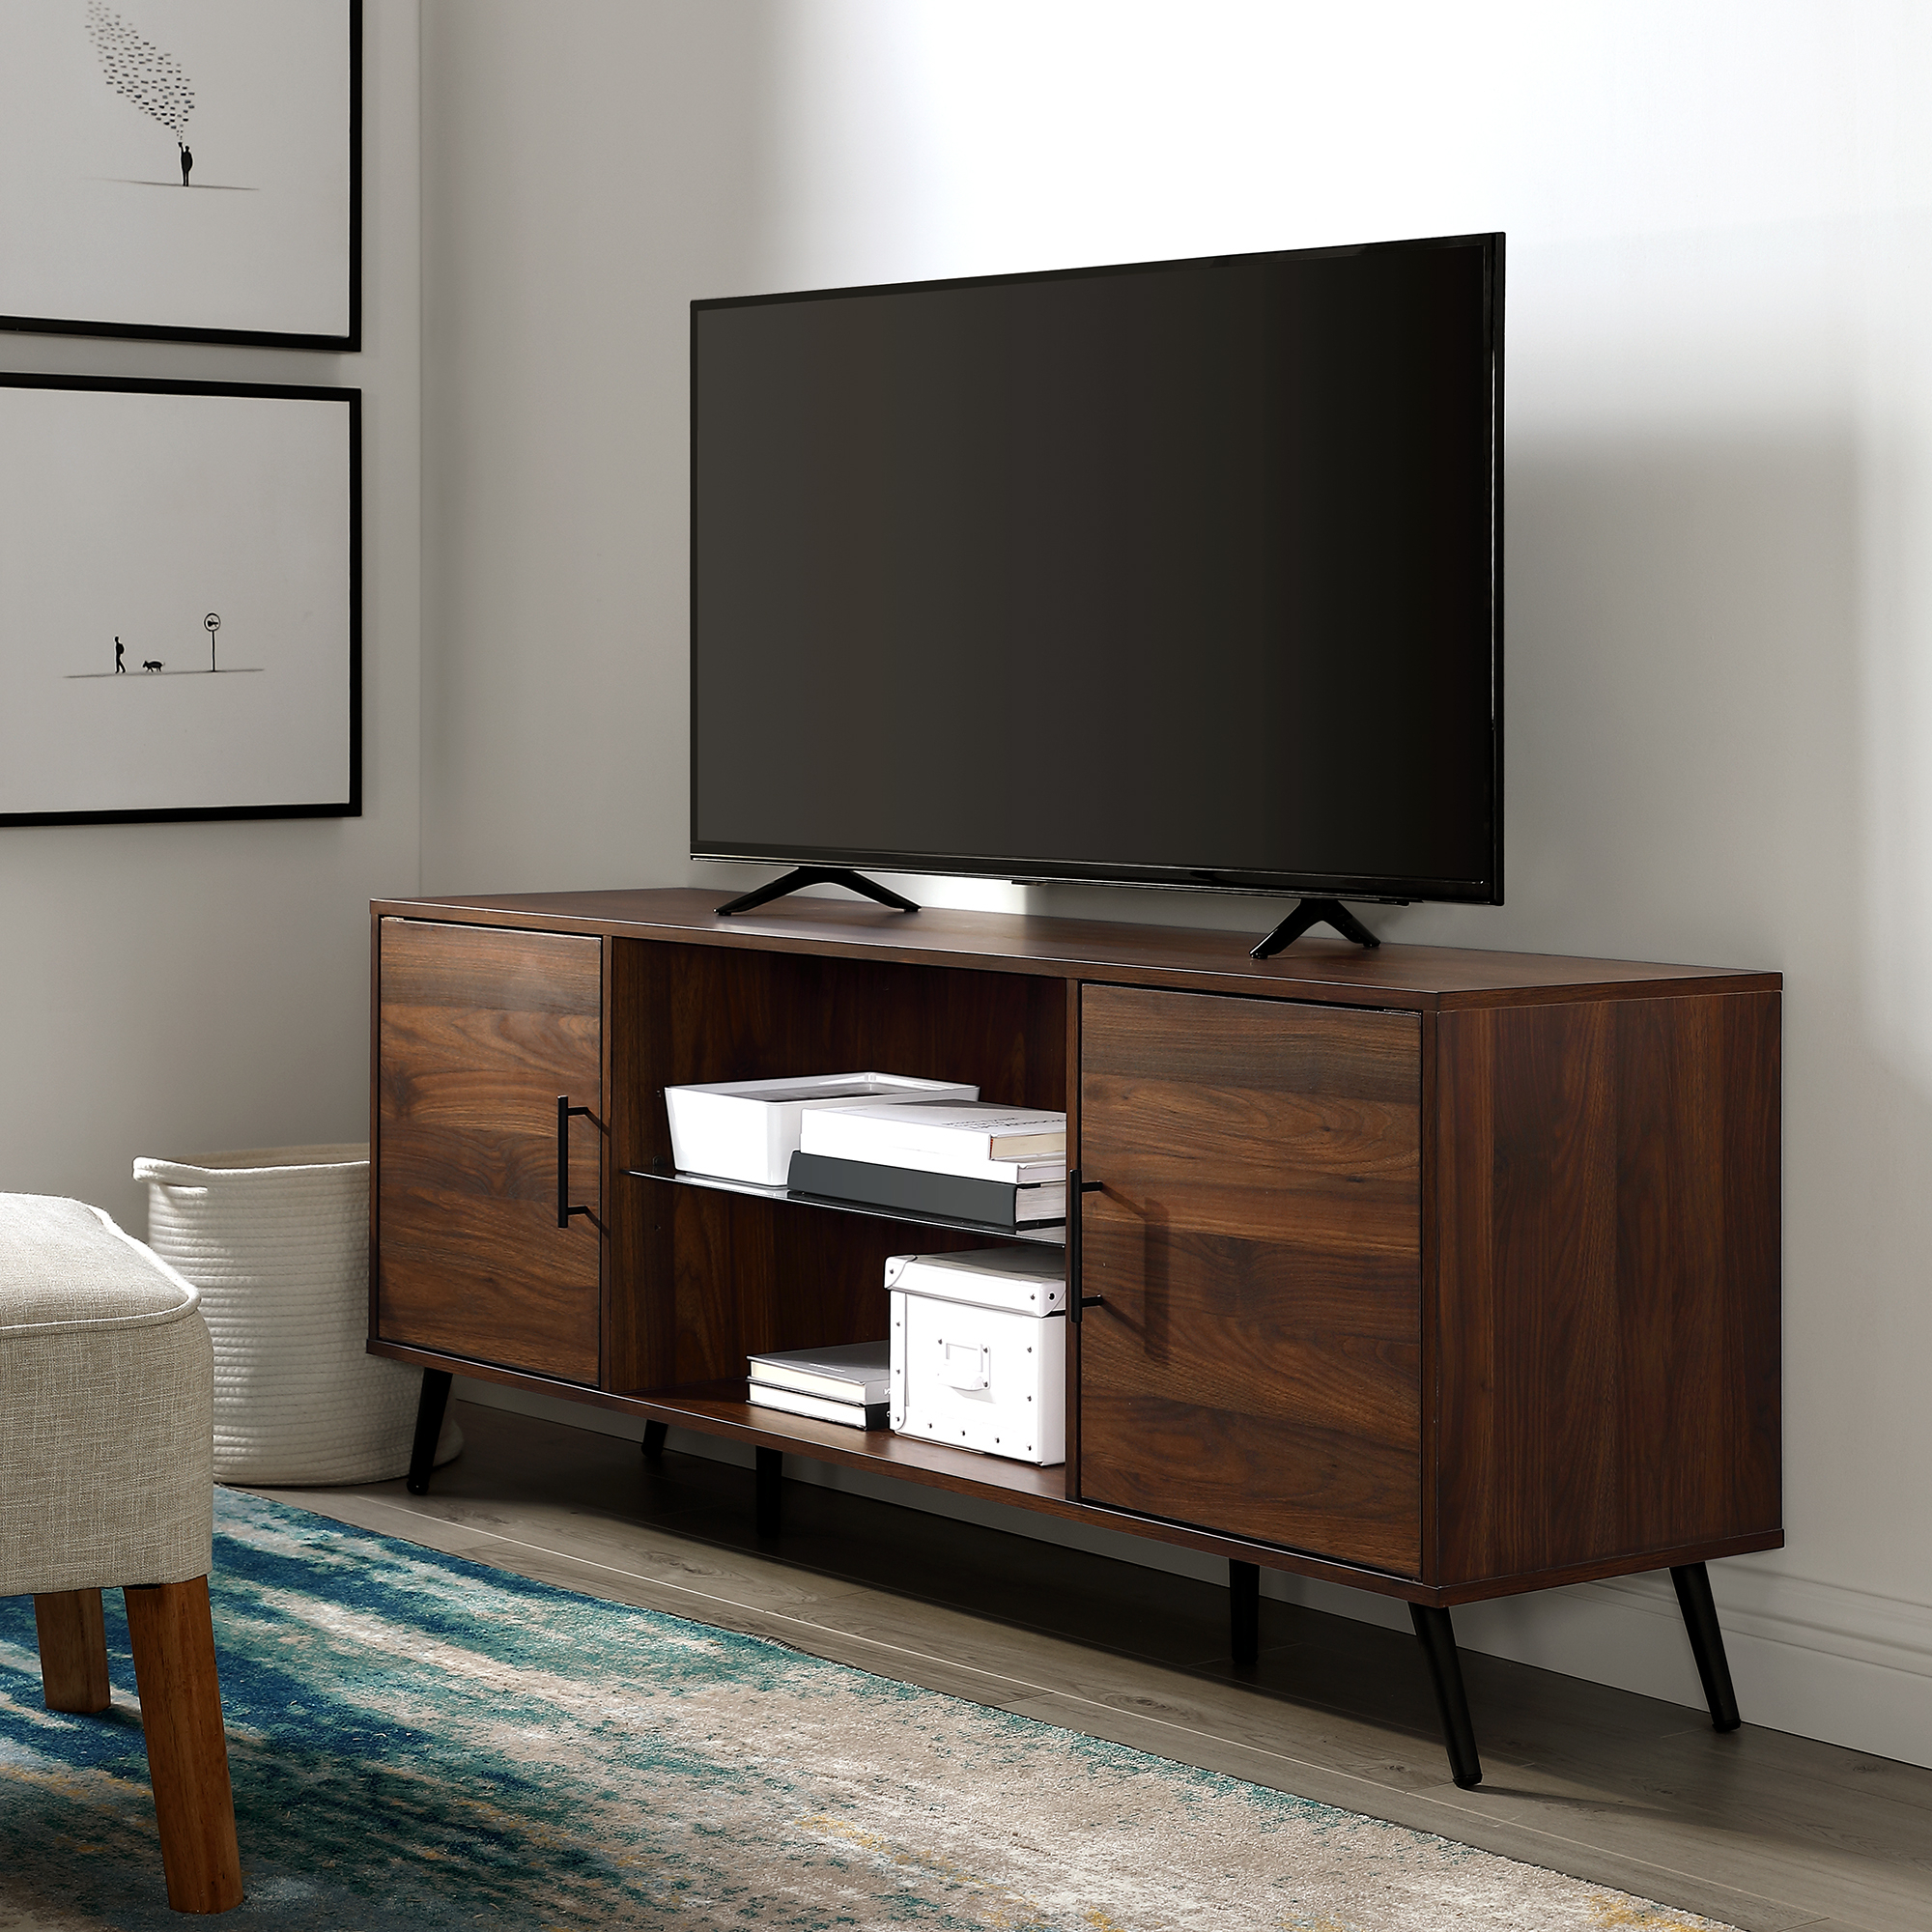 """Manor Park Mid Century 2 Door Tv Stand For Tvs Up To 65 Throughout Most Popular Dallas Tv Stands For Tvs Up To 65"""" (View 12 of 20)"""